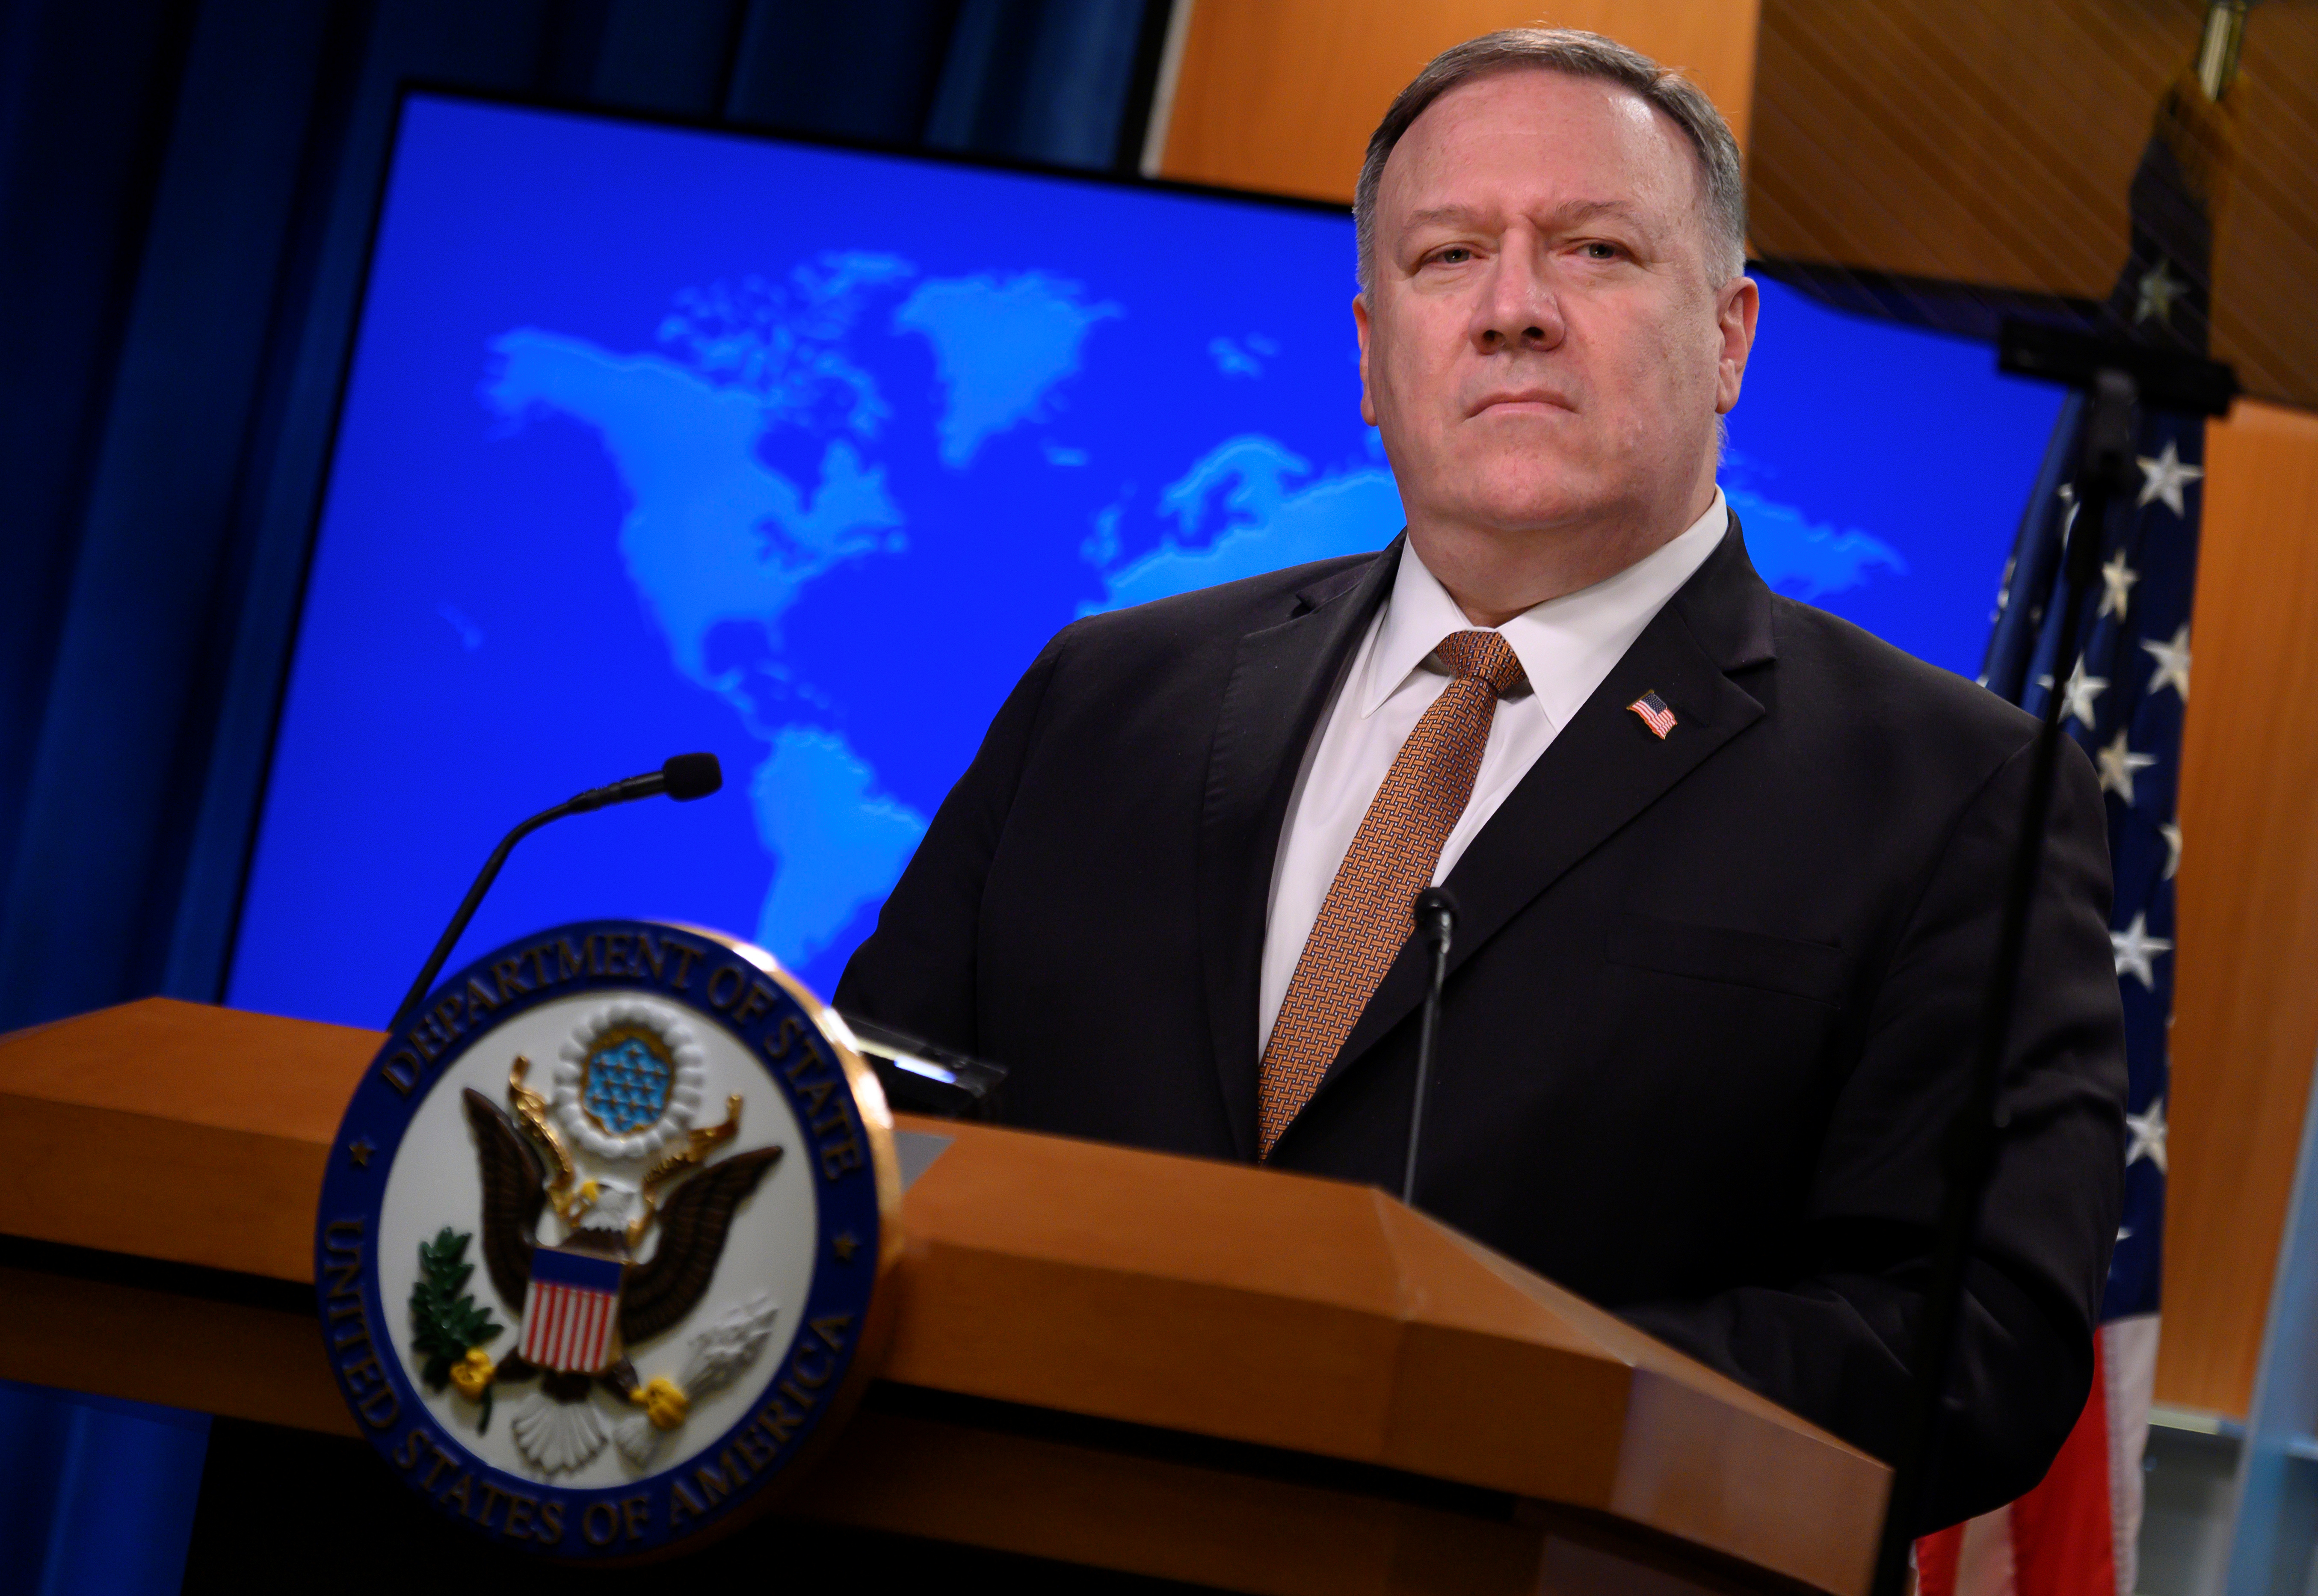 It is important for the world to know all the facts from China in relation to the coronavirus outbreak, US Secretary of State Mike Pompeo said on Wednesday. Photo: Reuters